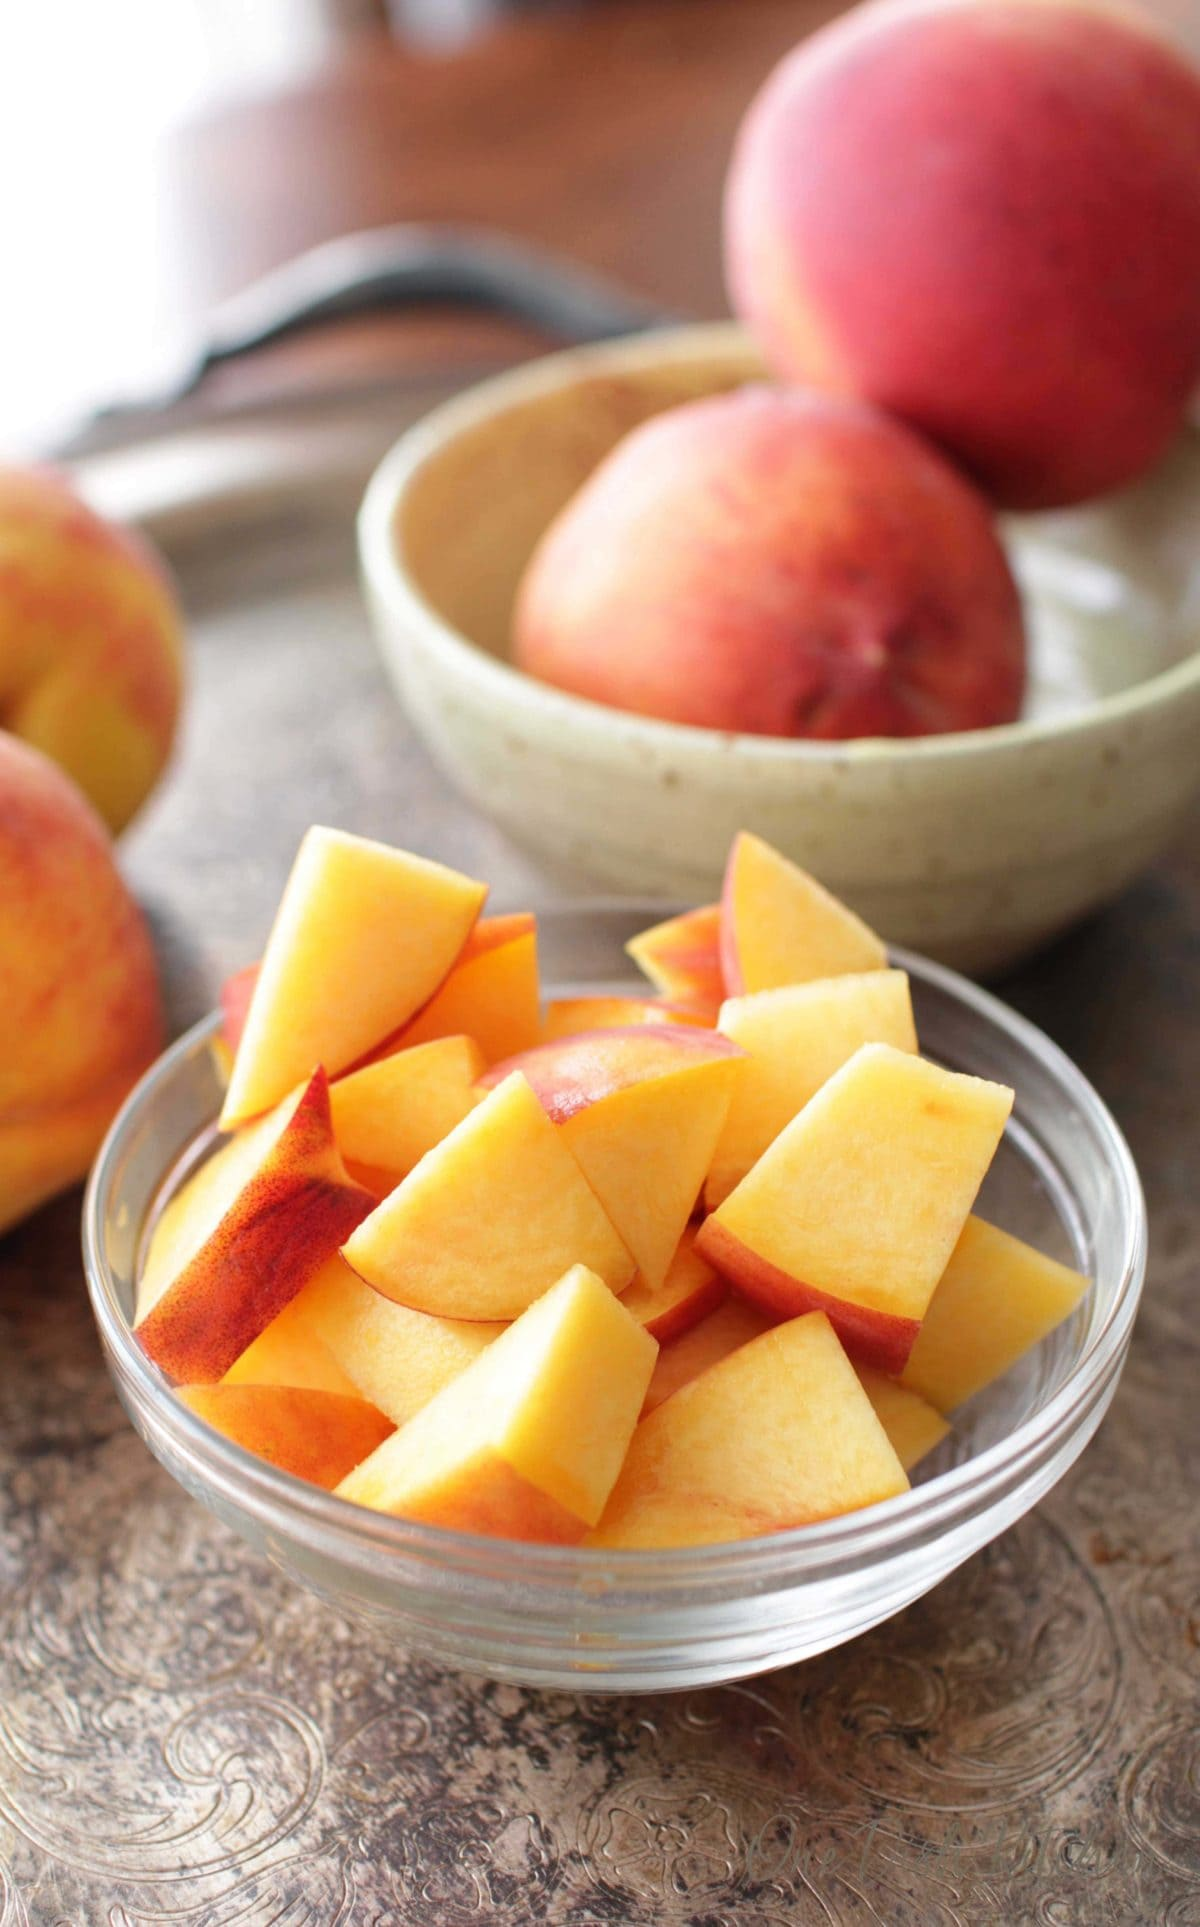 A small bowl filled with chopped peaches next to a bowl of whole peaches on a metal tray.